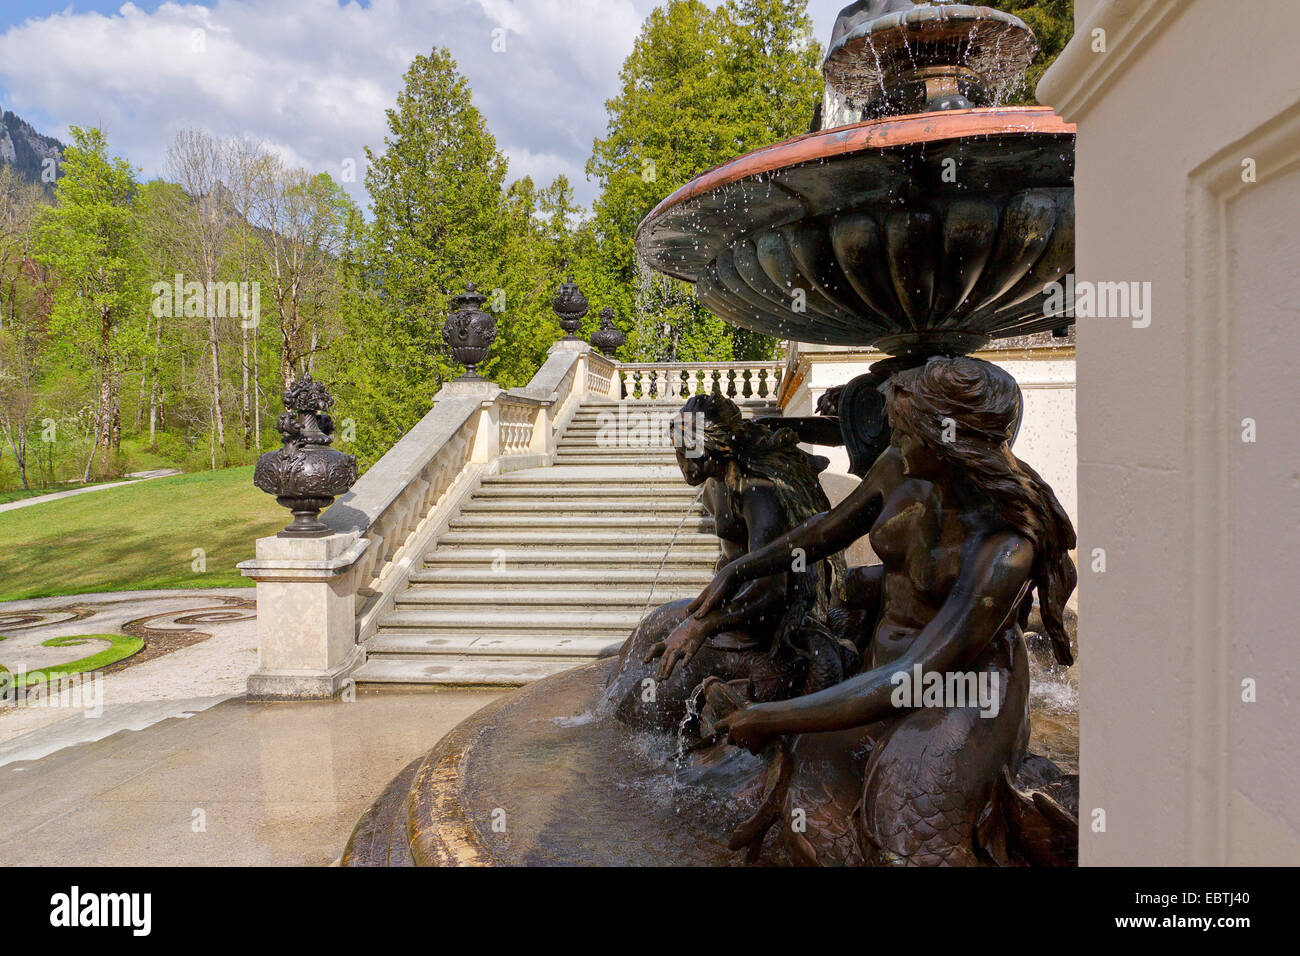 fountain and stairway in the park of Linderhof Palace, Germany, Bavaria, Oberbayern, Upper Bavaria, Ettal - Stock Image